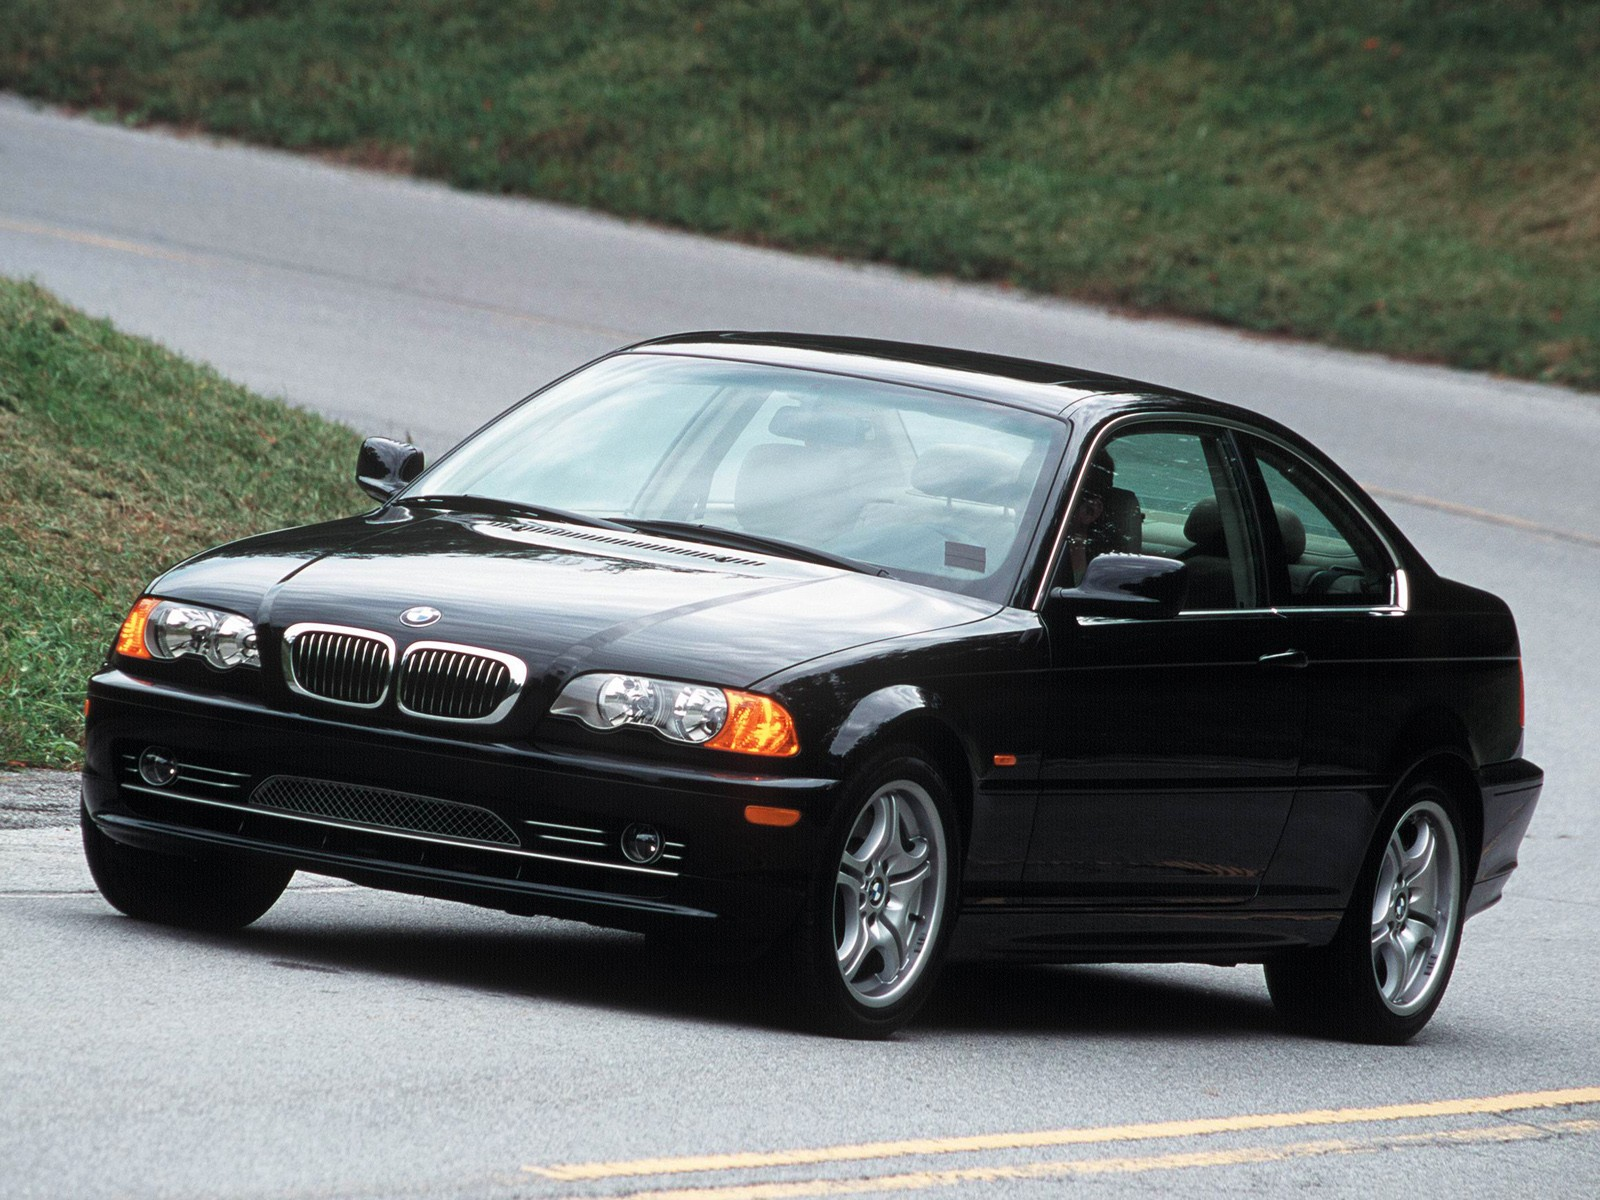 BMW 3 series 328Ci 2003 photo - 9